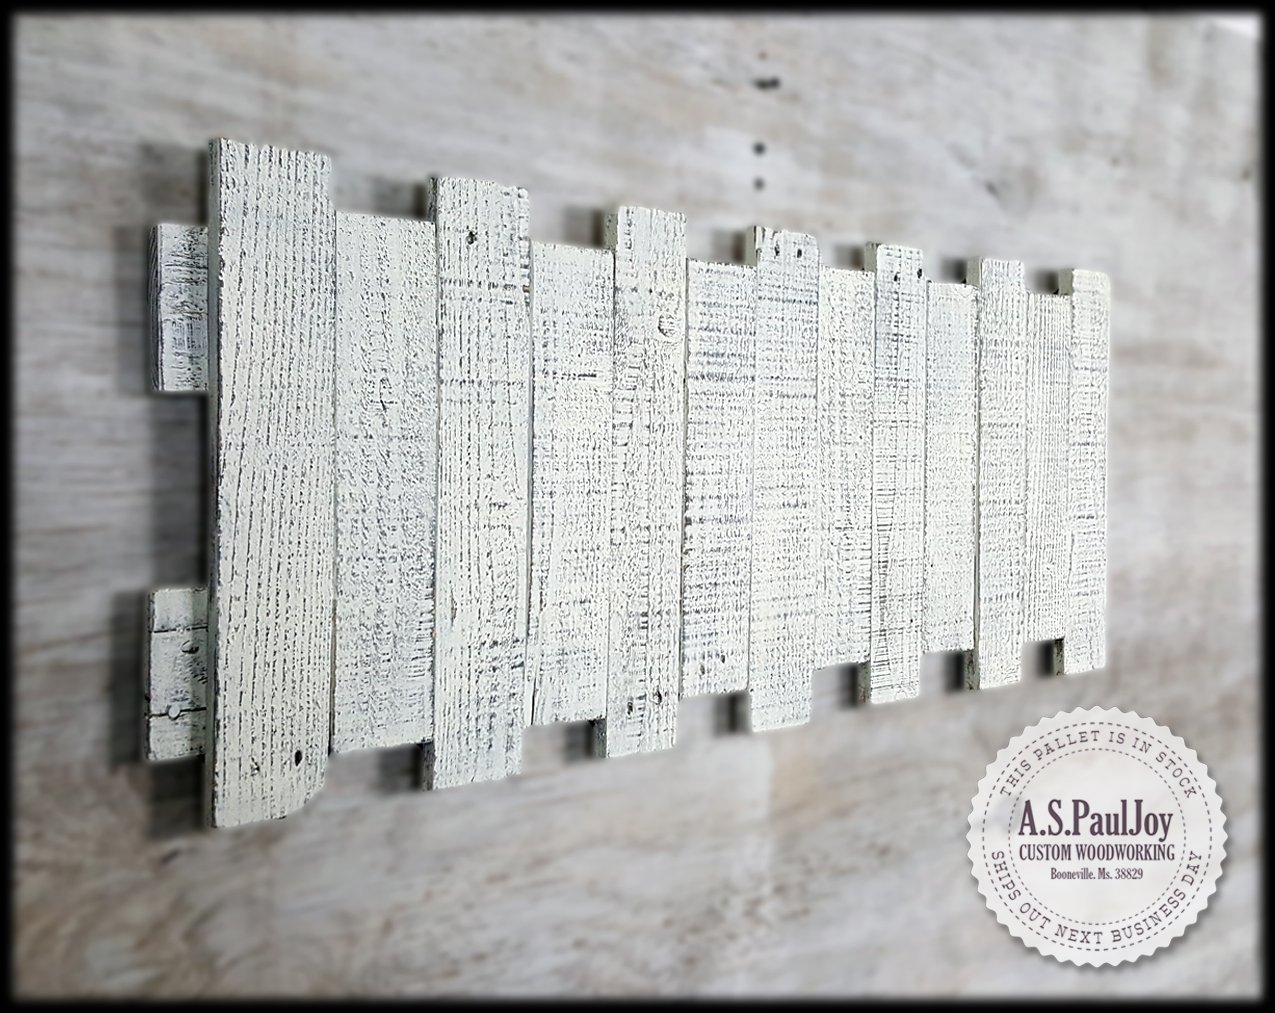 Rustic Pallet Wall Art. Pallet Sign. Distressed White Painted Rustic Home Decor. Pallet Art. Reclaimed Wood Sign. Farmhouse Decor. Shabby Chic. Barnwood Wall Hanging